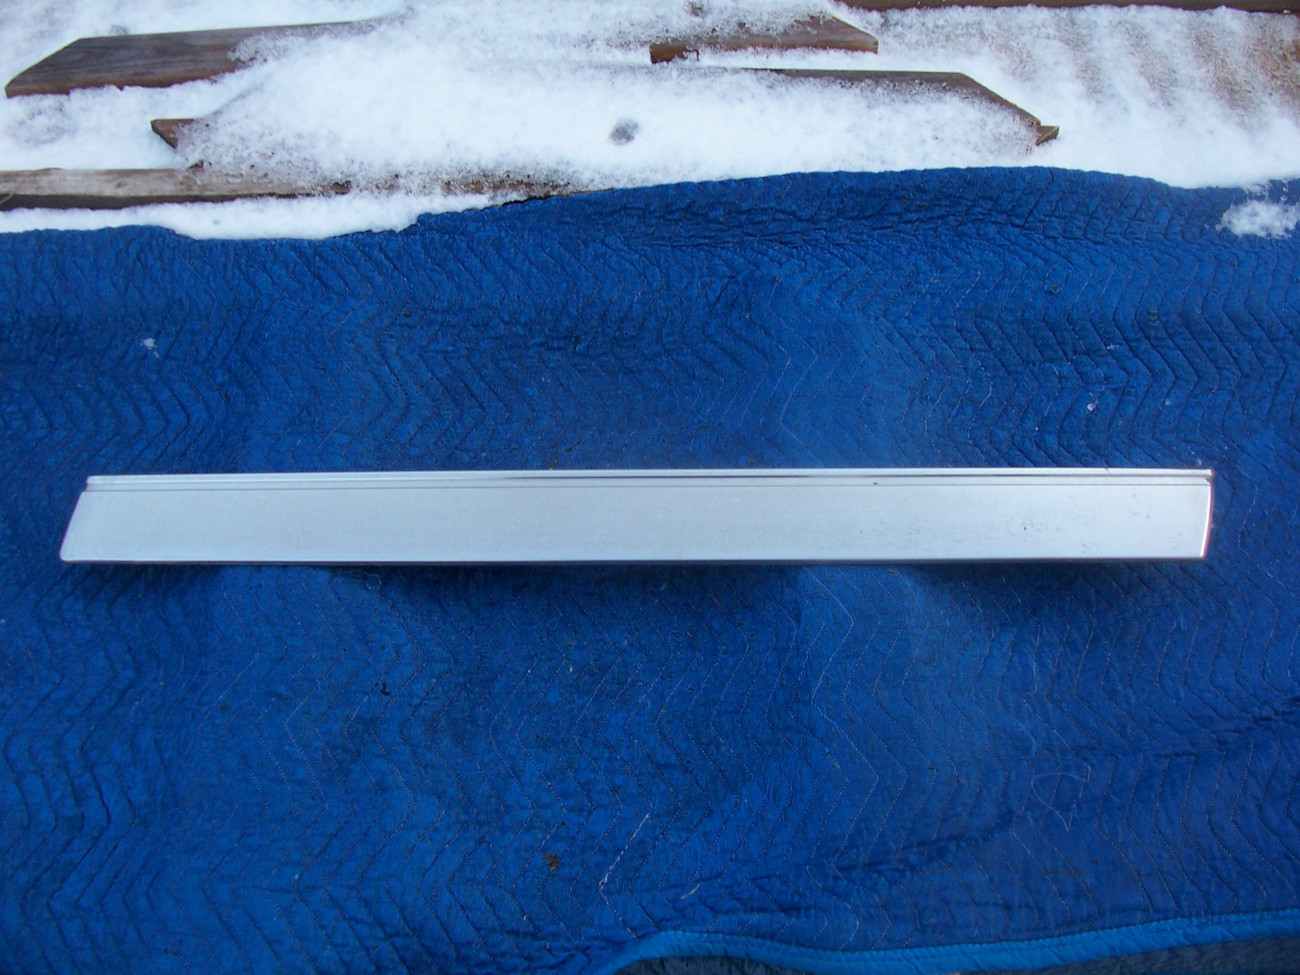 Primary image for 1985 1986 FLEETWOOD FWD RIGHT FRONT DOOR TRIM MOLDING USED ORIG CADILLAC PART